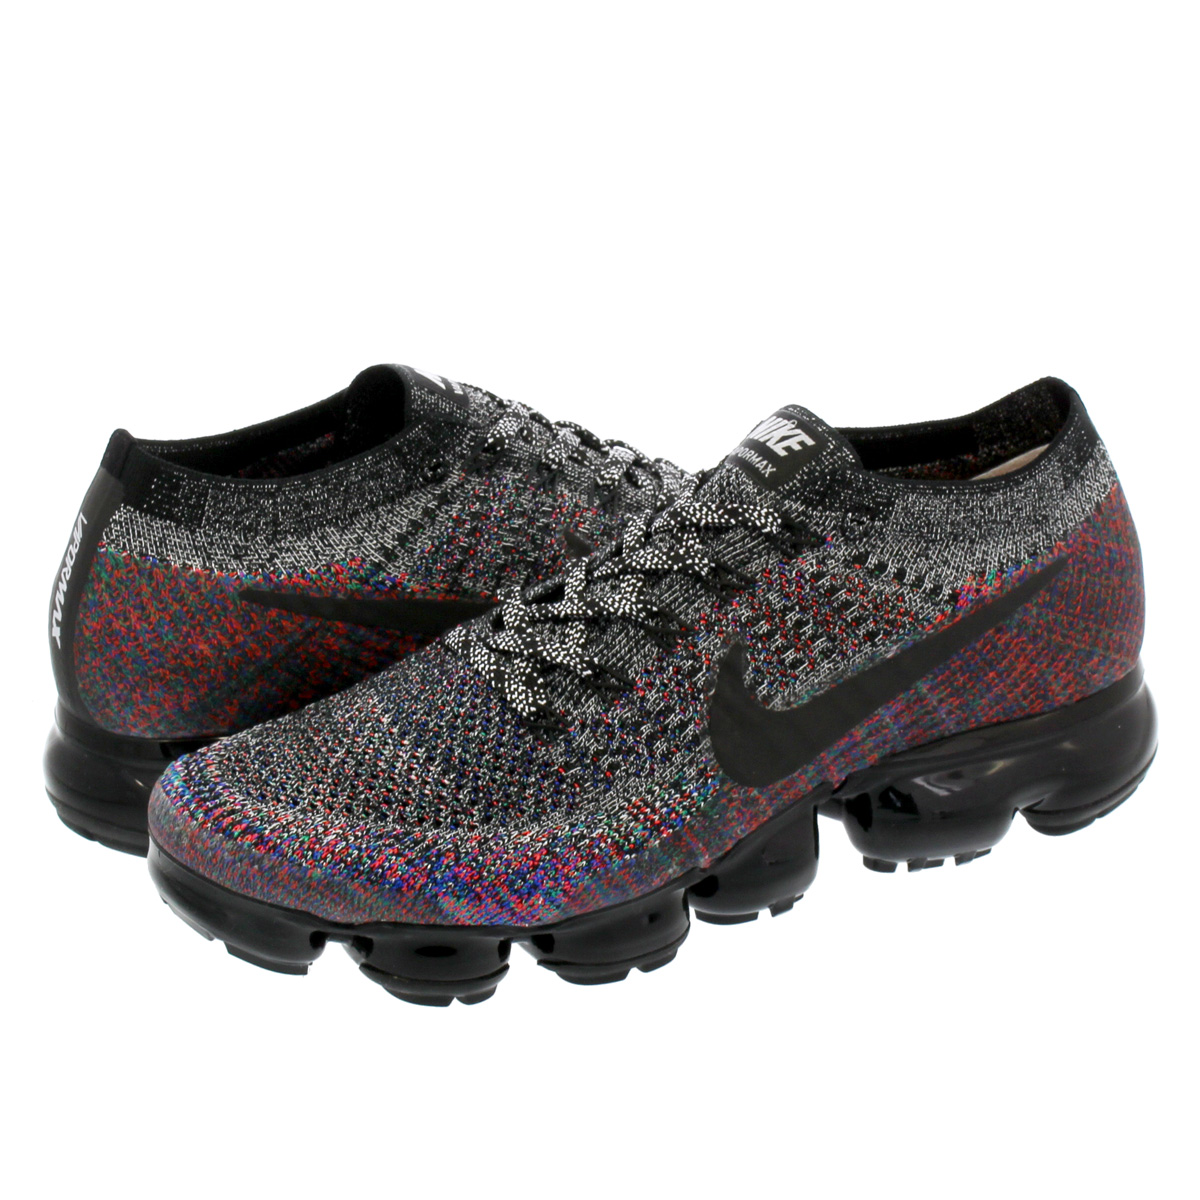 NIKE AIR VAPORMAX FLYKNIT CNY 【CHINESE NEW YEAR】 ナイキ ヴェイパー マックス フライニット CNY BLACK/MULTI COLOR 849558-016